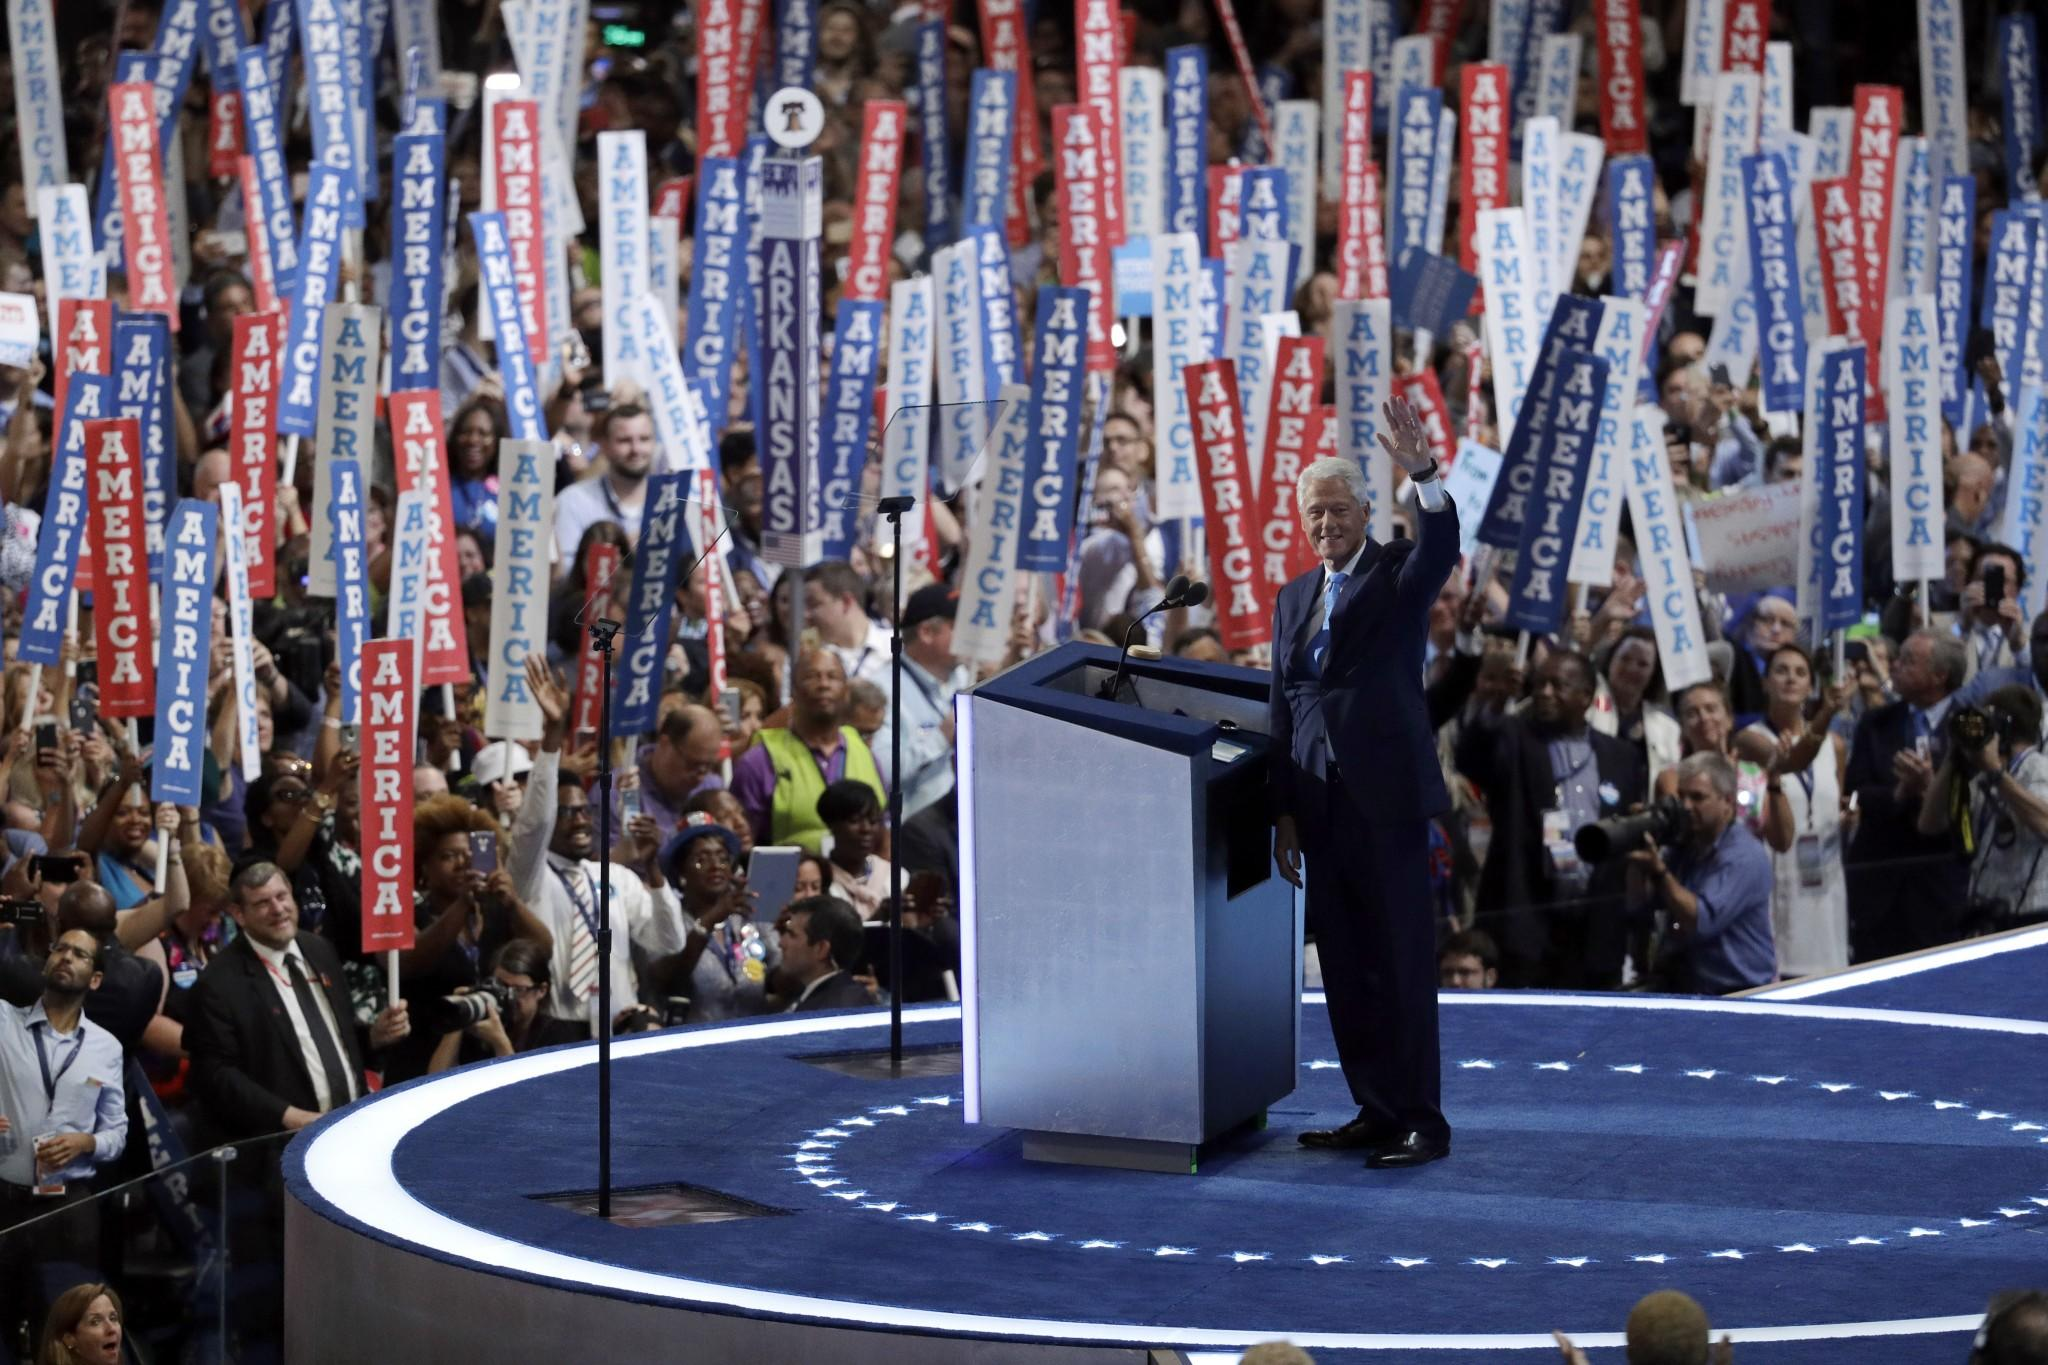 Former President Bill Clinton at the Democratic National Convention on Tuesday. (Photo: John Locher/AP)